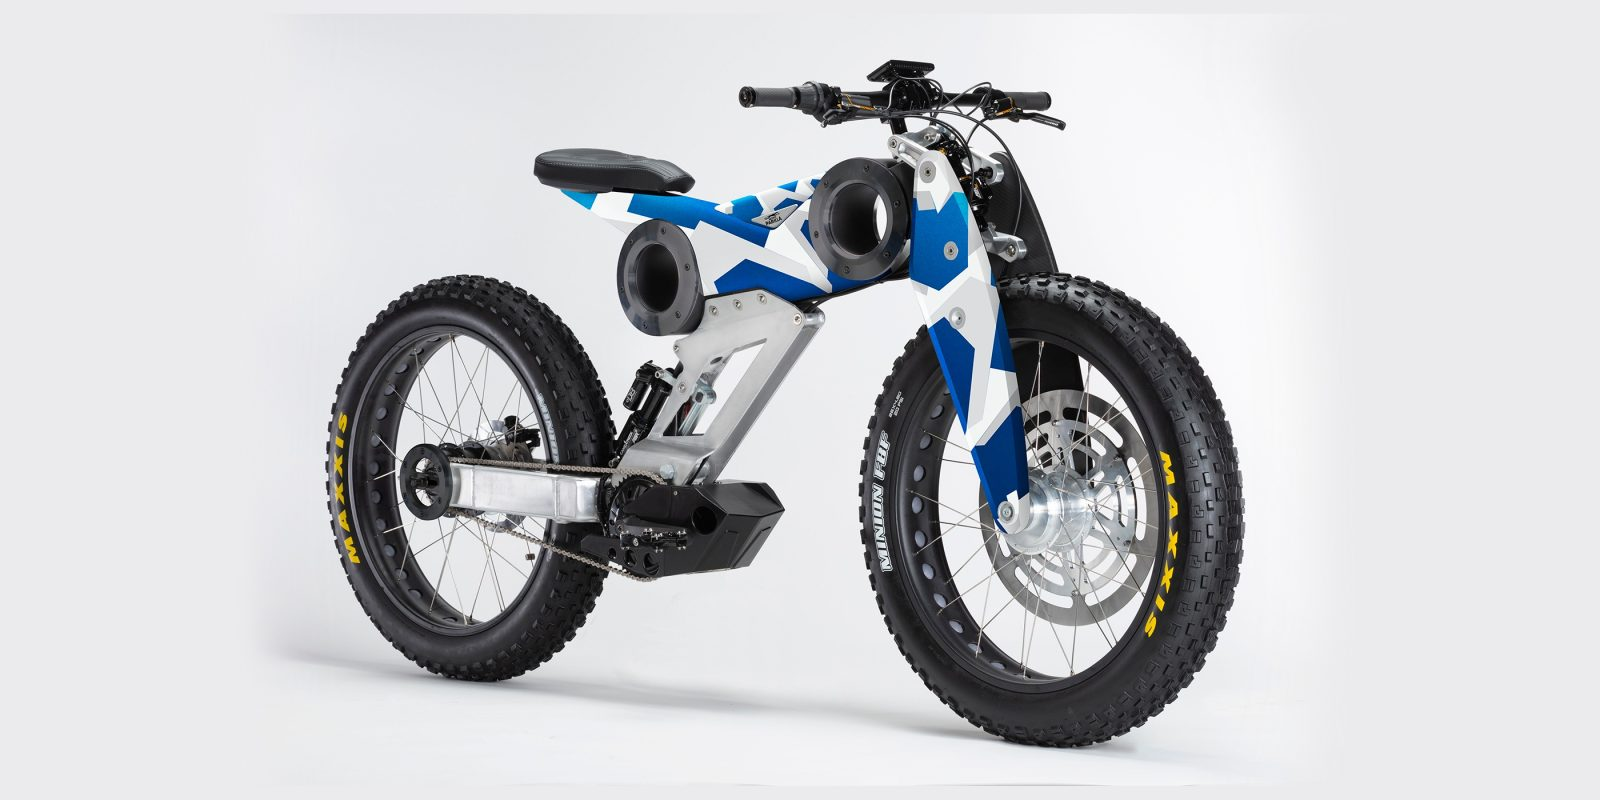 This electric motorcycle-lookin' thing is actually an Italian electric bicycle